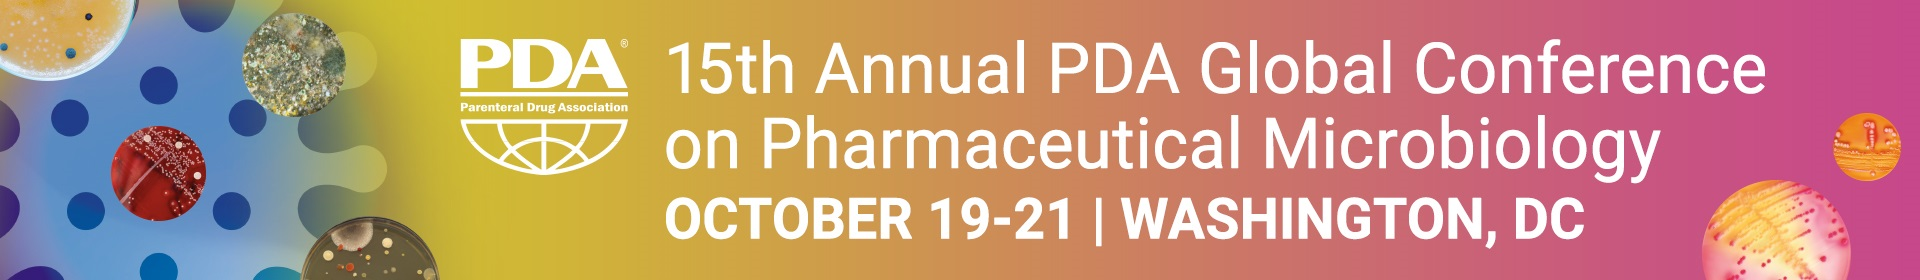 15th Annual PDA Global Conference on Pharmaceutical Microbiology Event Banner